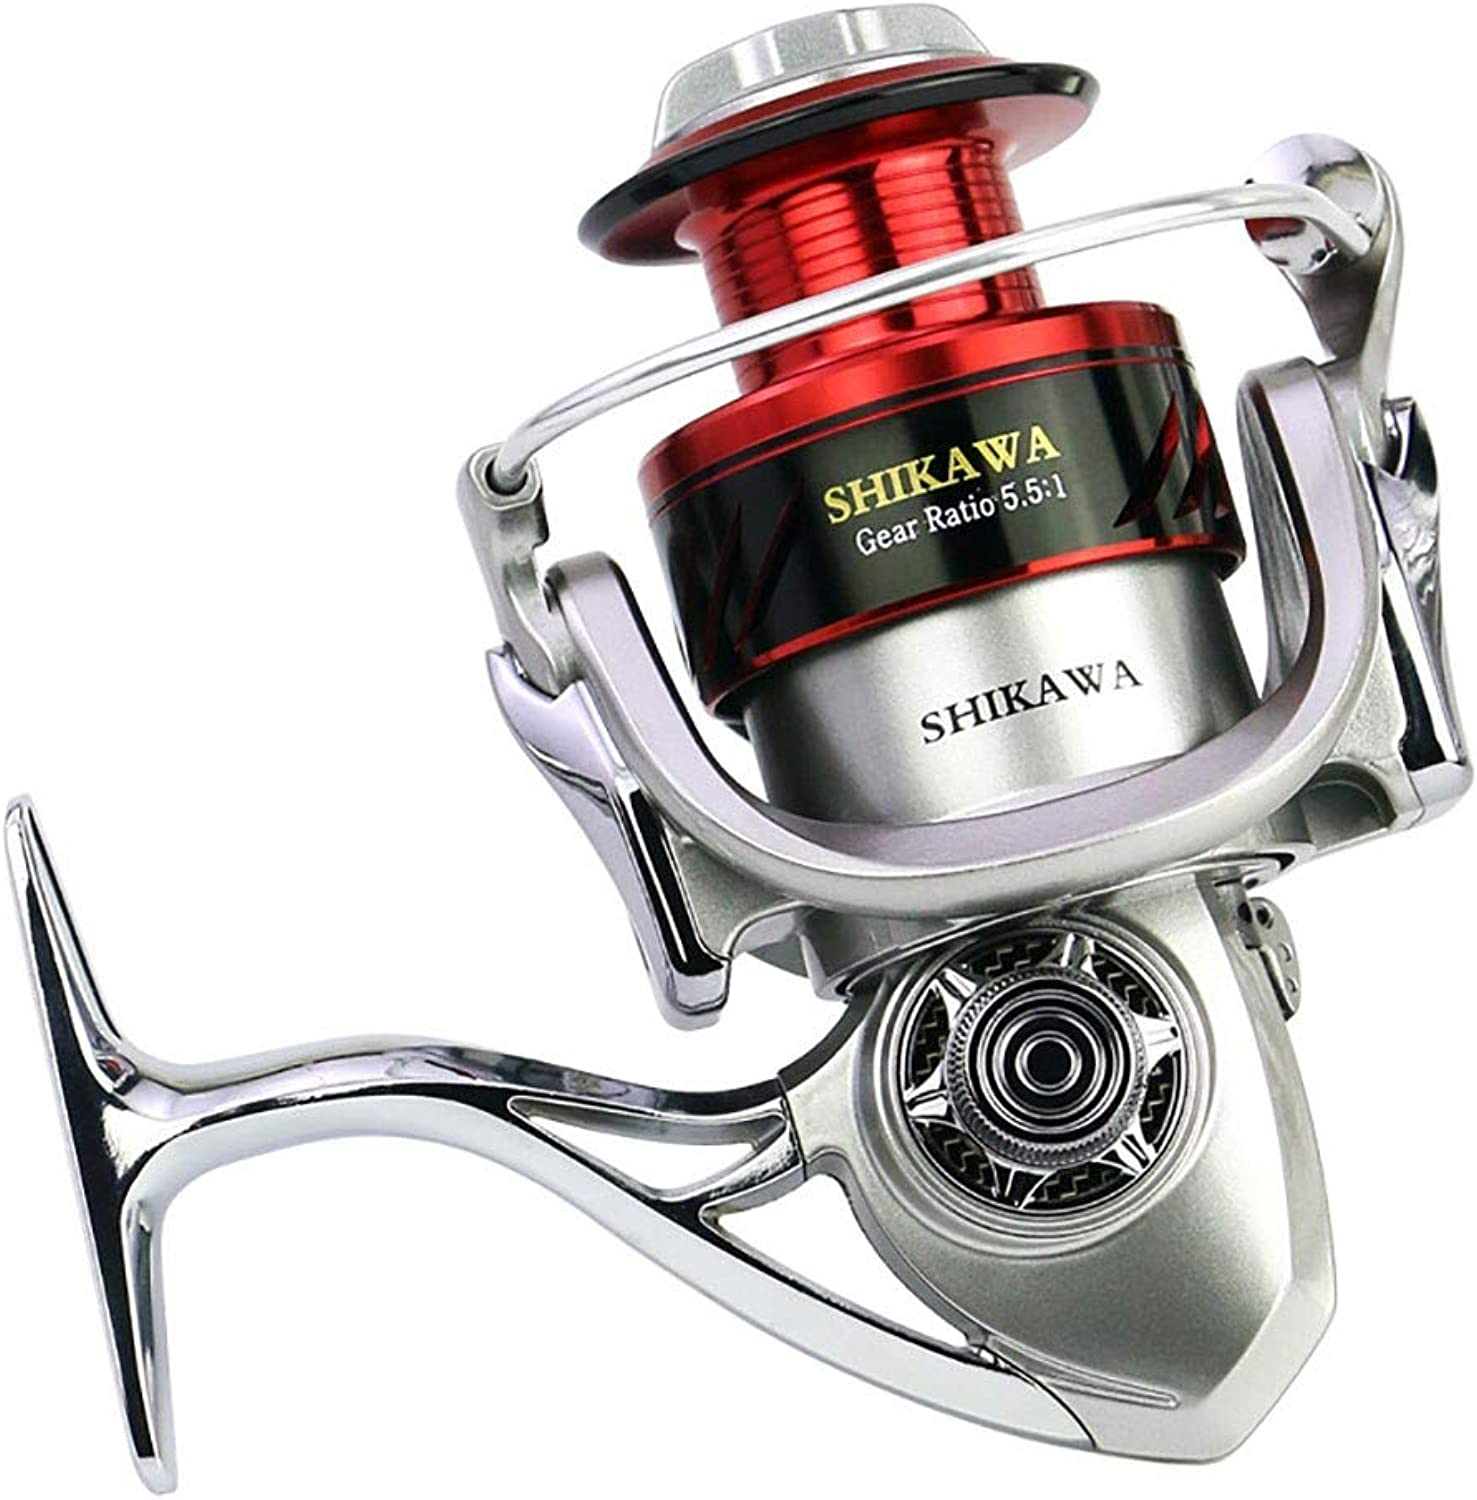 Spinning Fishing Reels,Speed Ratio 5.5 1 Metal Twocolor Wire Cup Metal Saltwater Baitcasting Reel Left Right Interchangeable CNC Rocker Arm Light and Smooth Spinning Reels